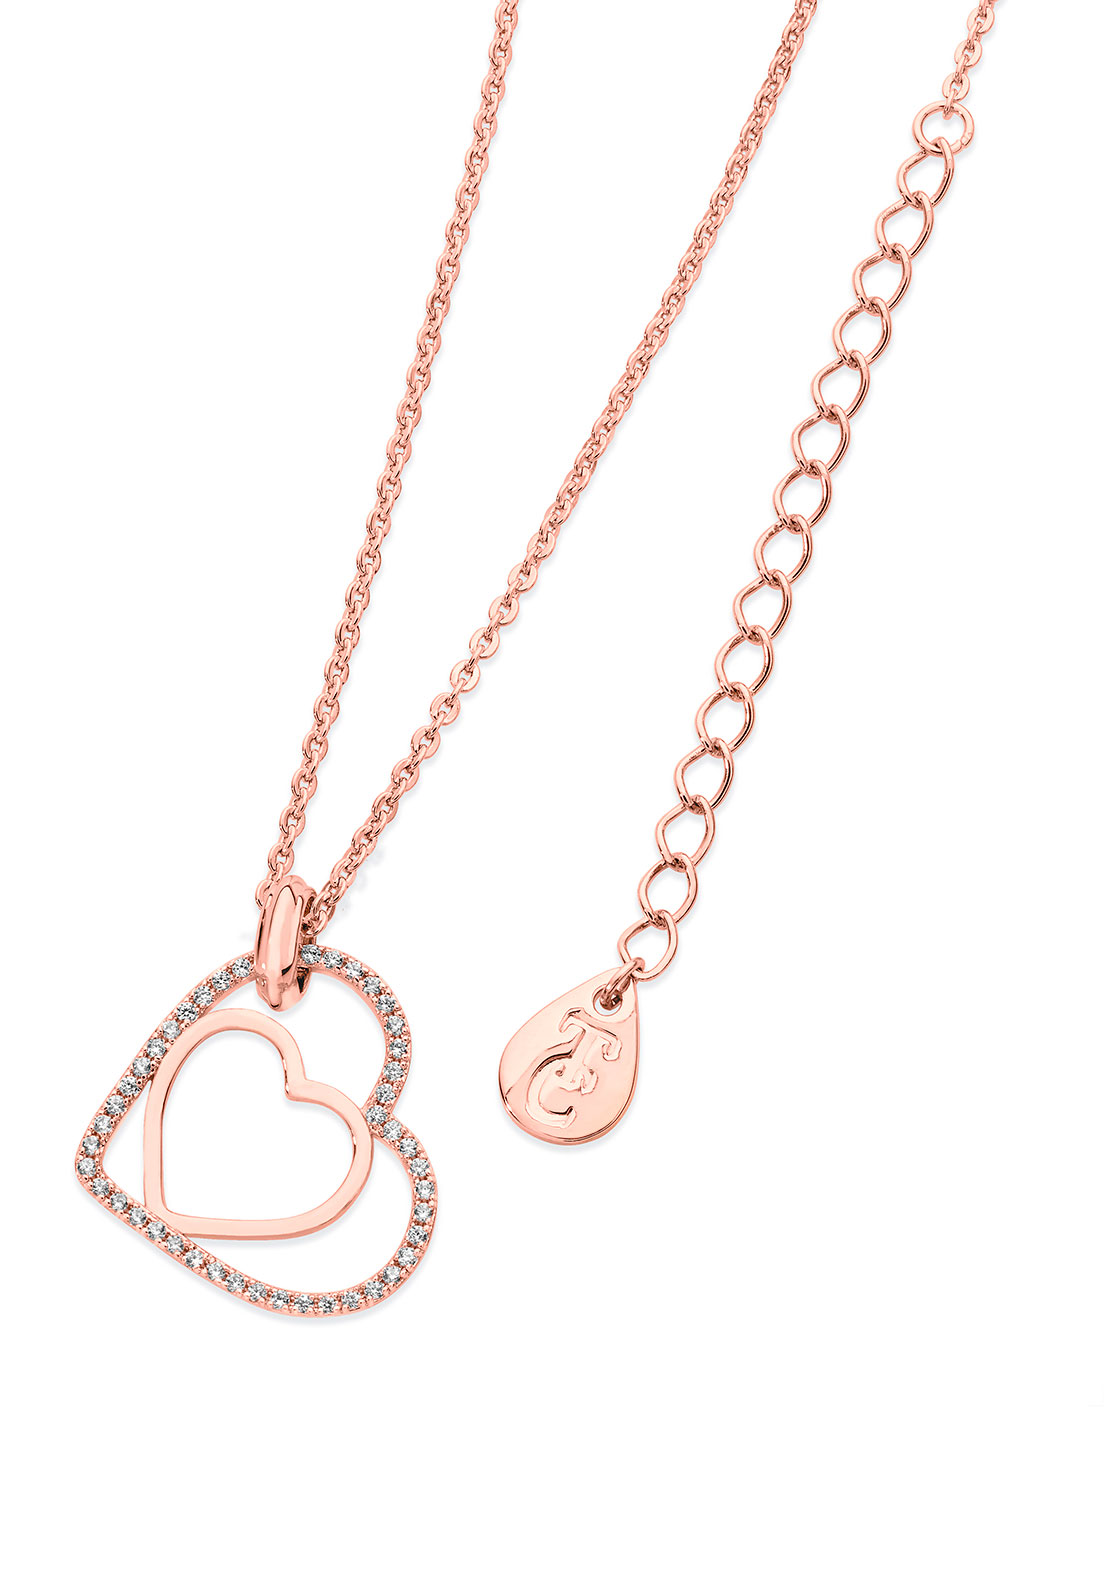 Tipperary Crystal Floating Heart Necklace, Rose Gold